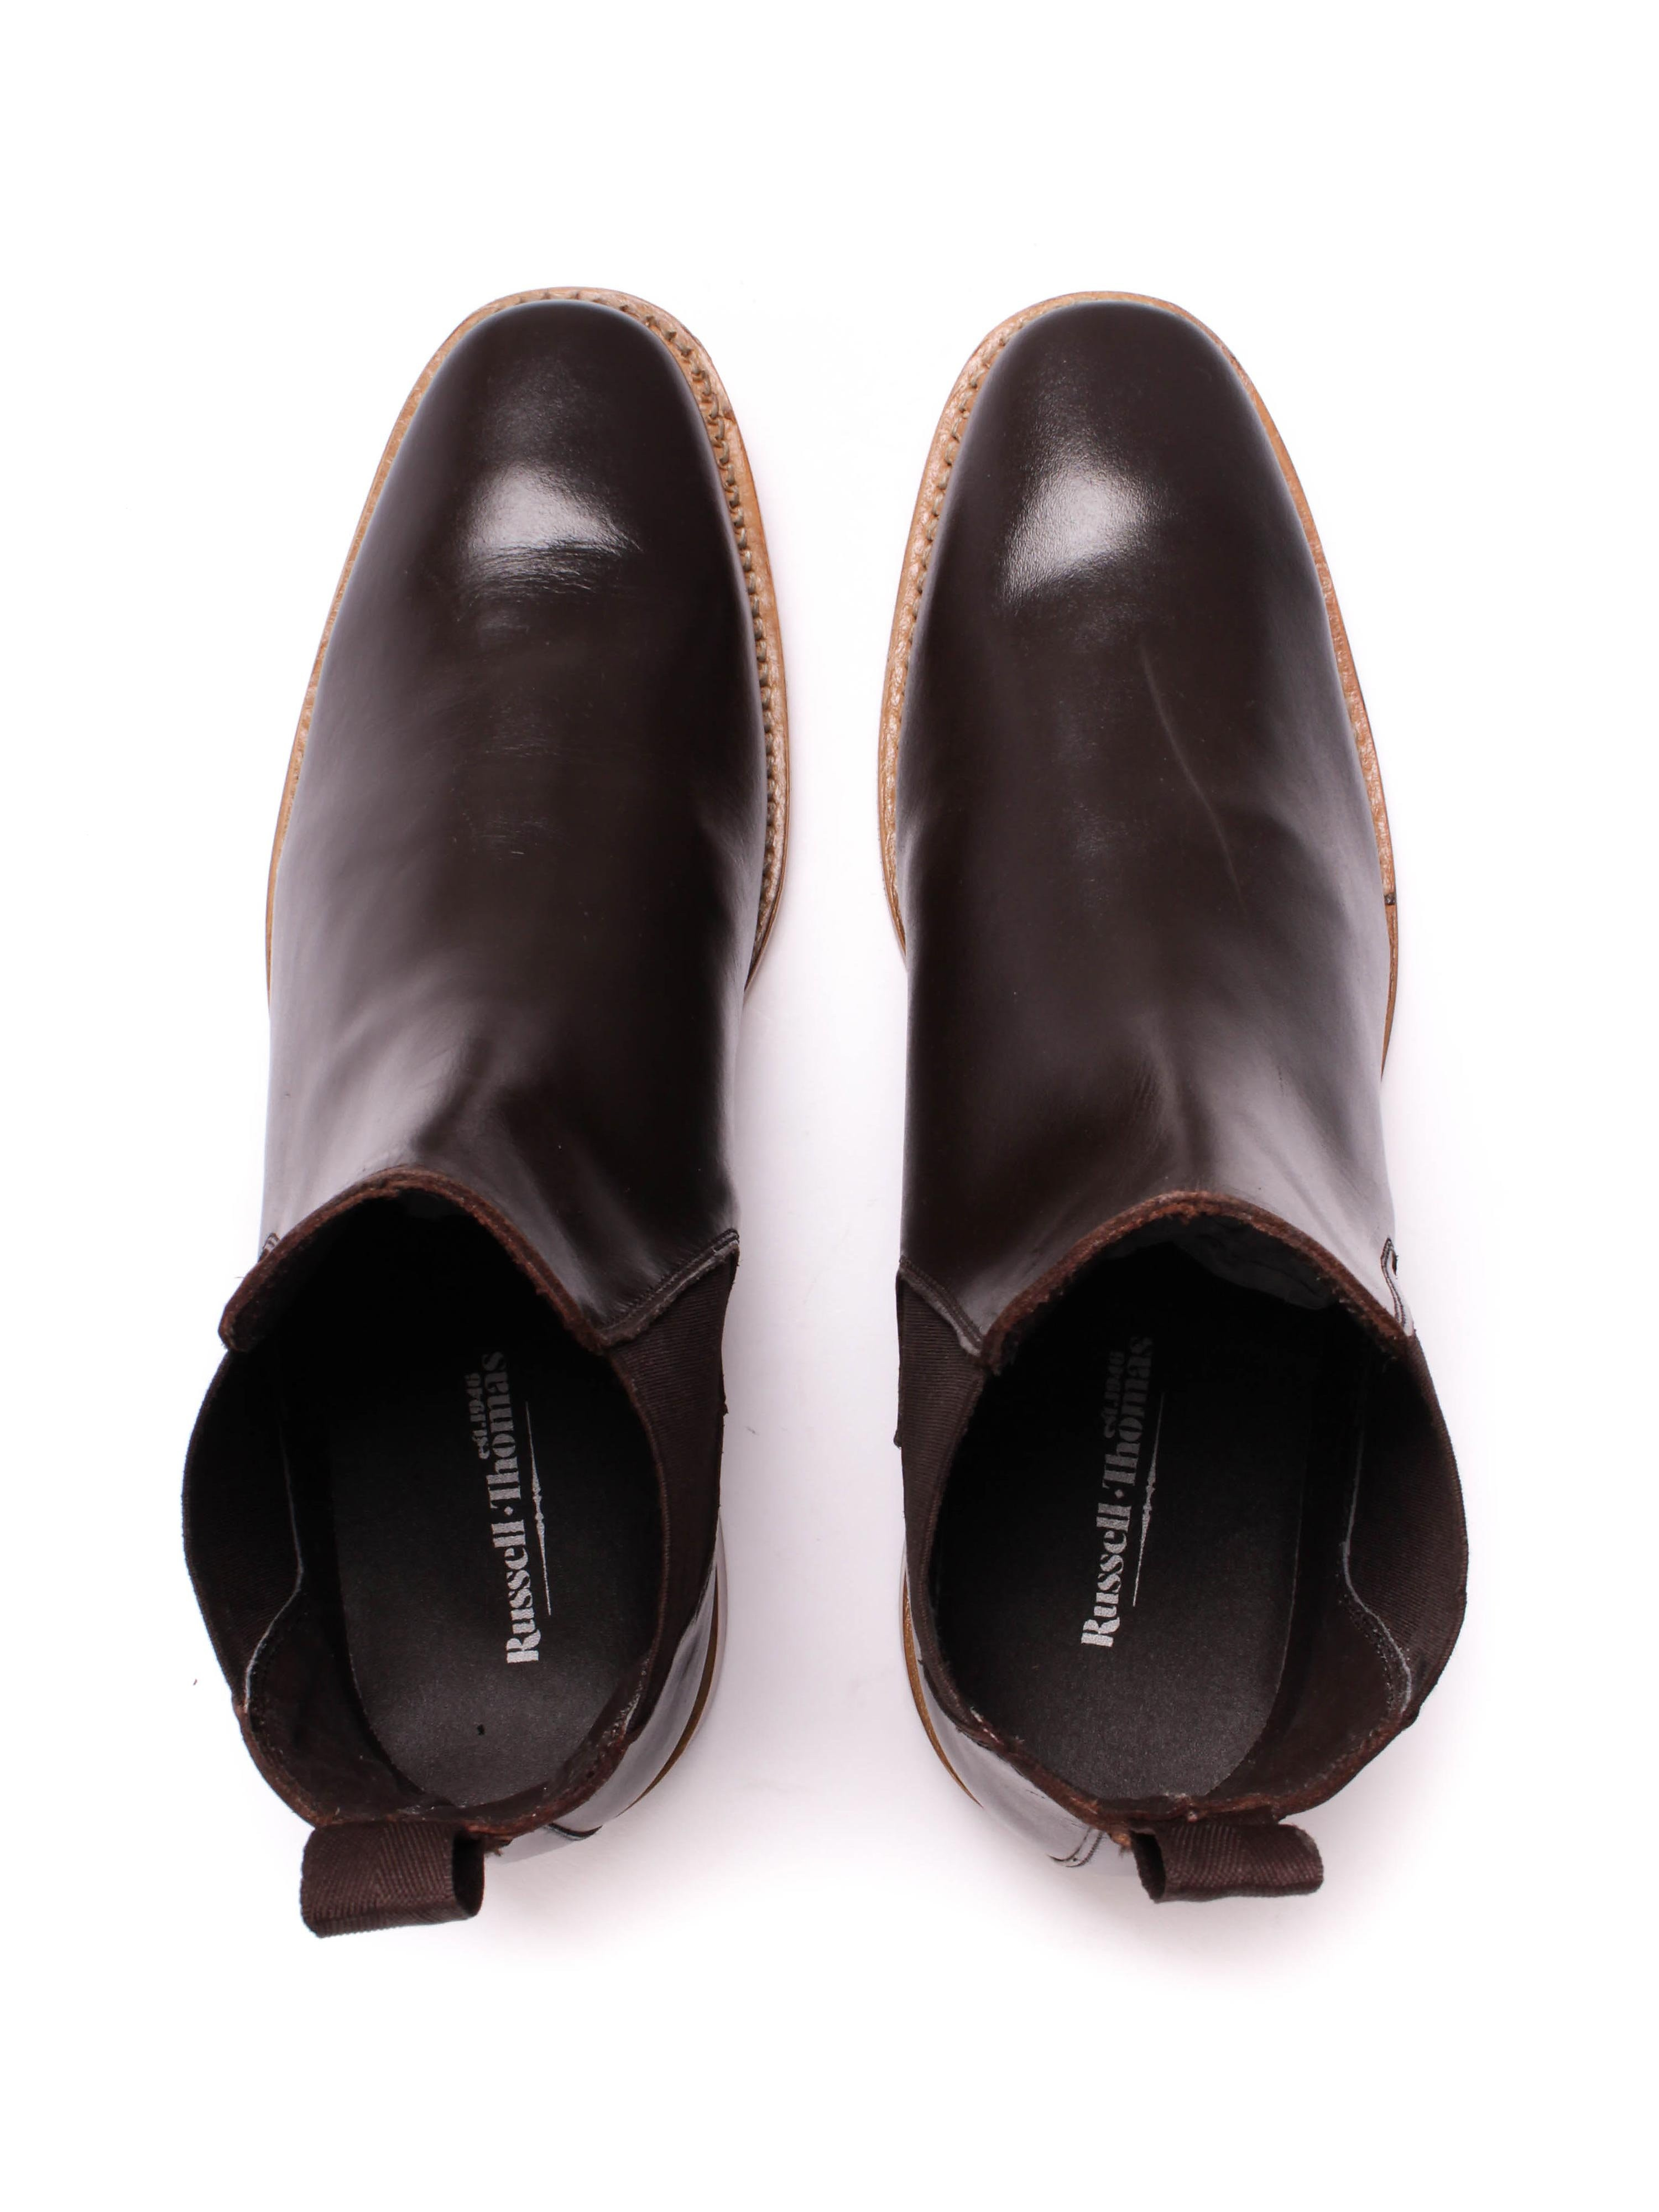 Russell Thomas Mens Dark Brown Leather Chelsea Boots